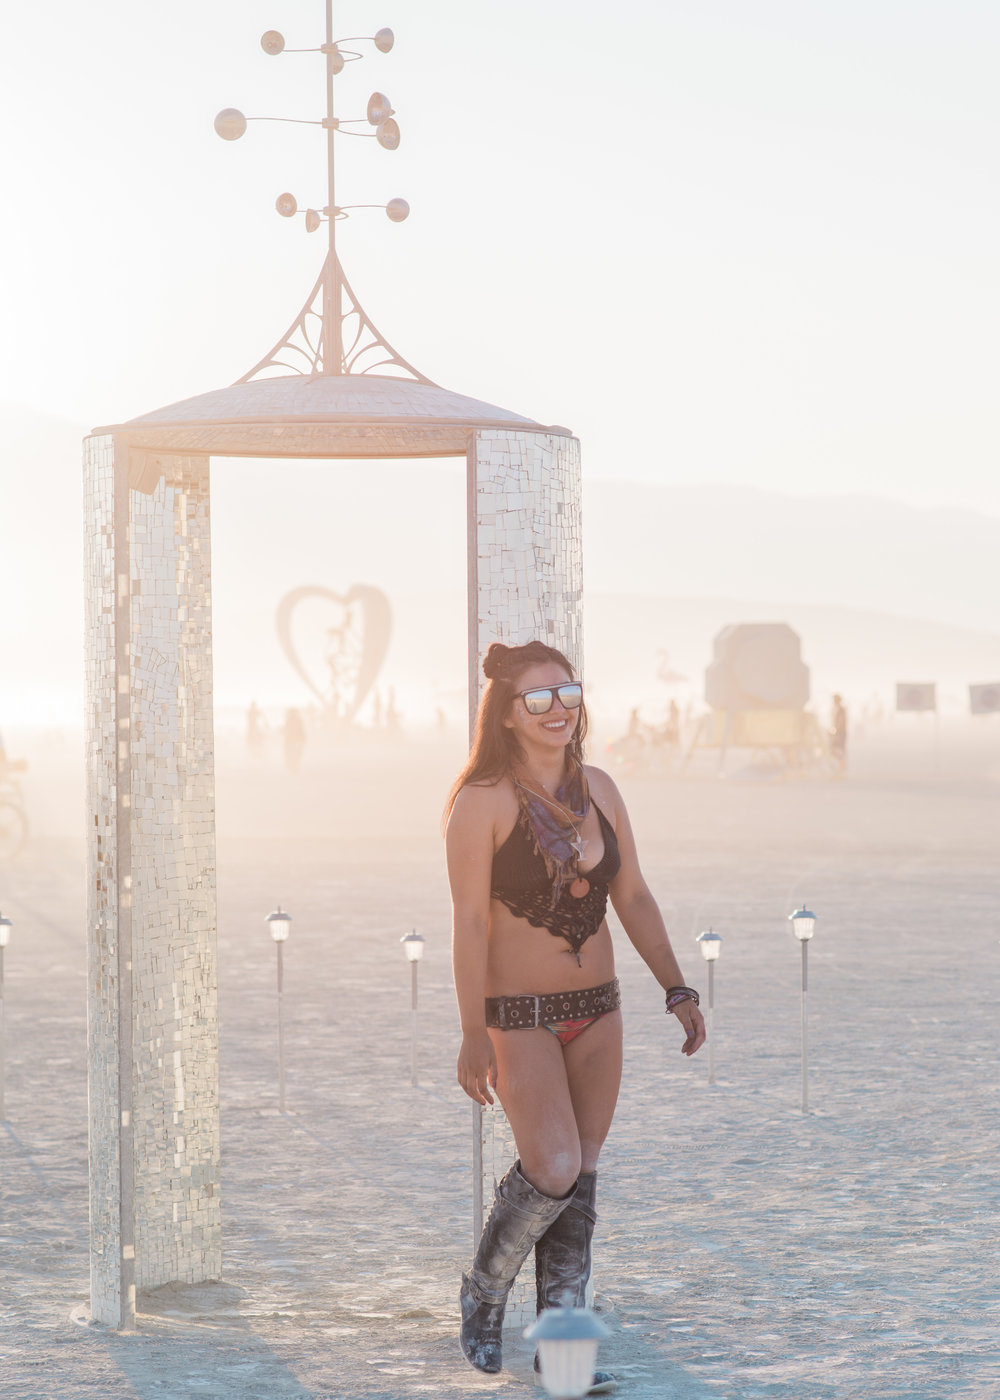 BurningManFRI85_KelliPricePhotography_BlackRockCity_September2017.jpg